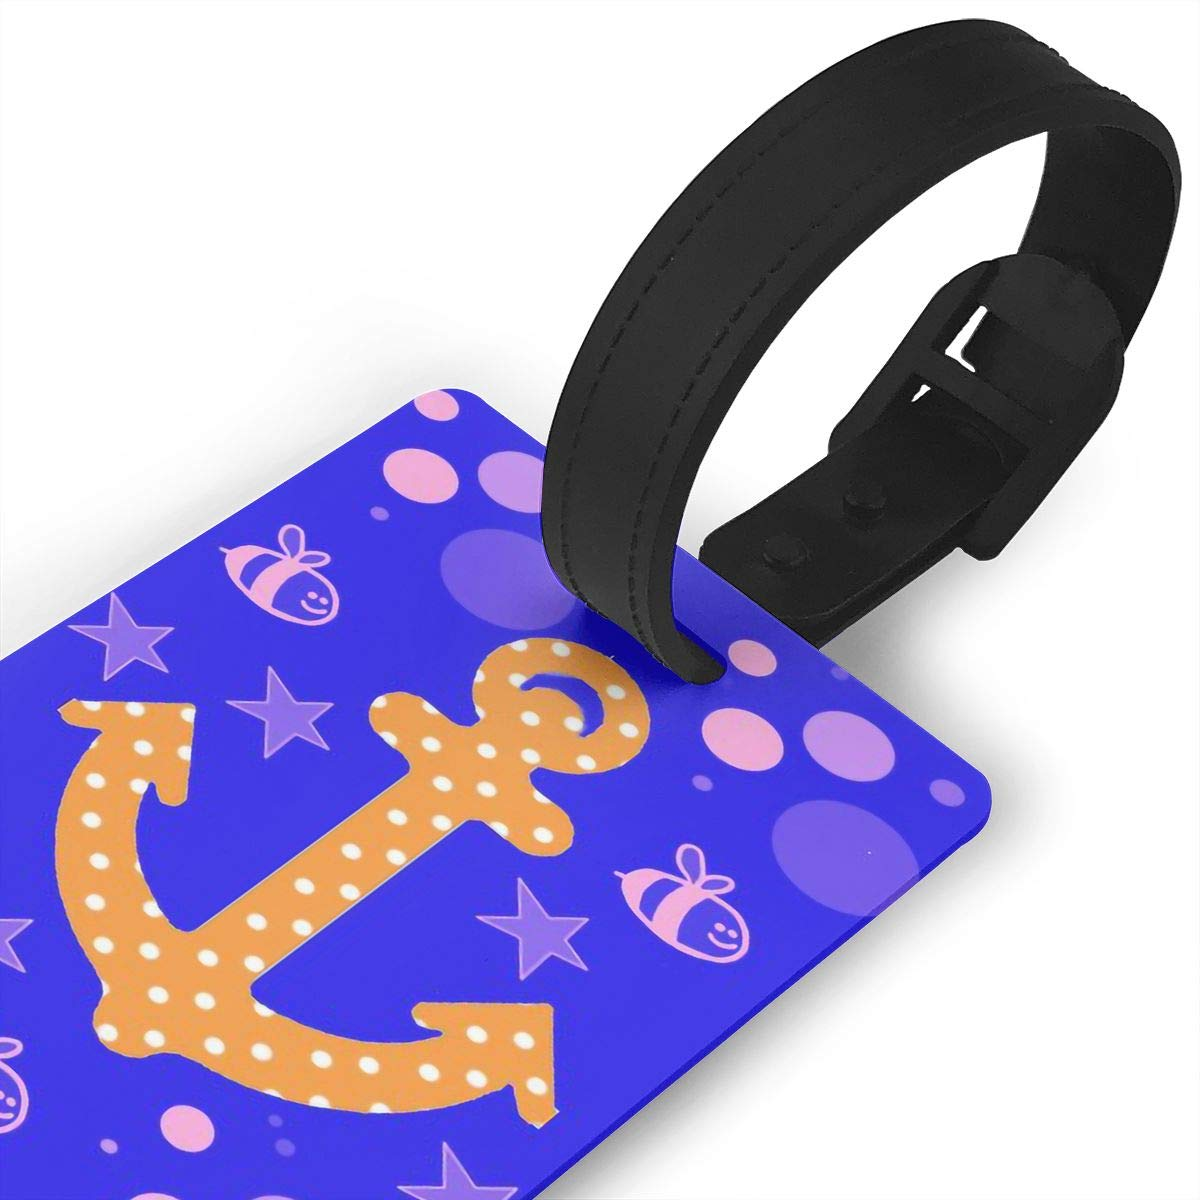 Anchors Baggage Tag For Travel Bag Suitcase Accessories 2 Pack Luggage Tags